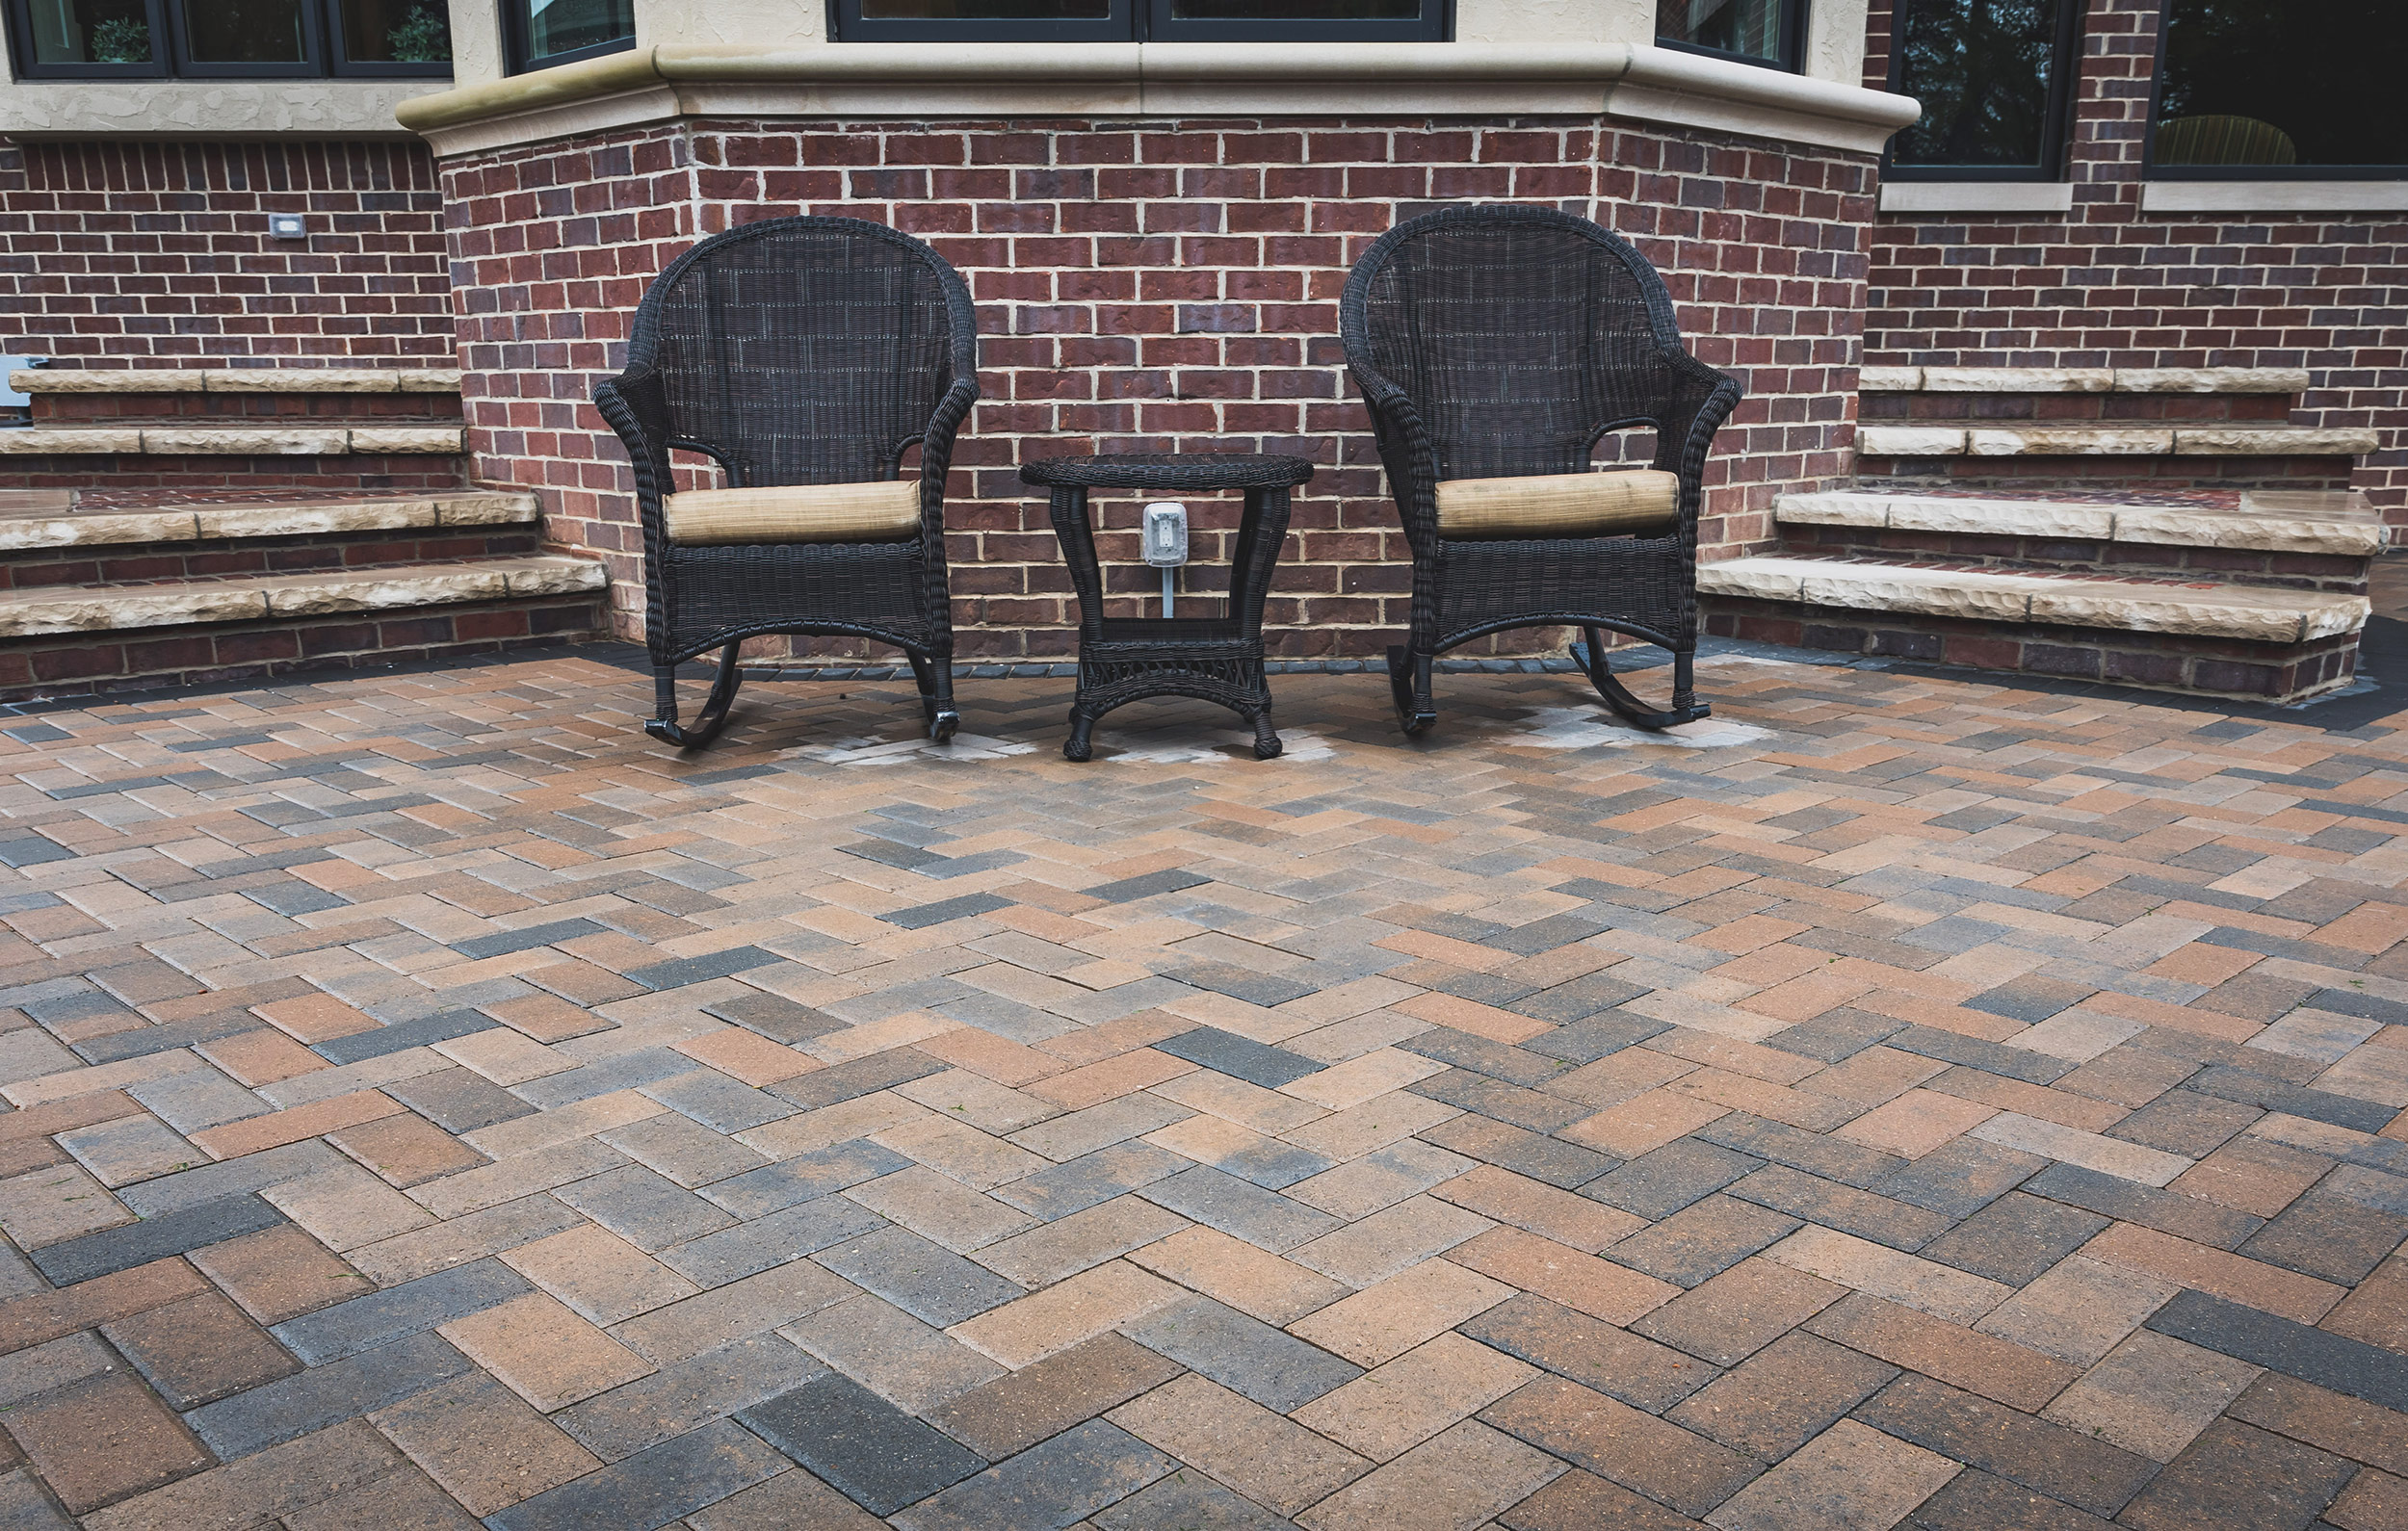 haddad-quality-landscaping-michigan-noethville-patio-fireplace-stately-home-02.jpg